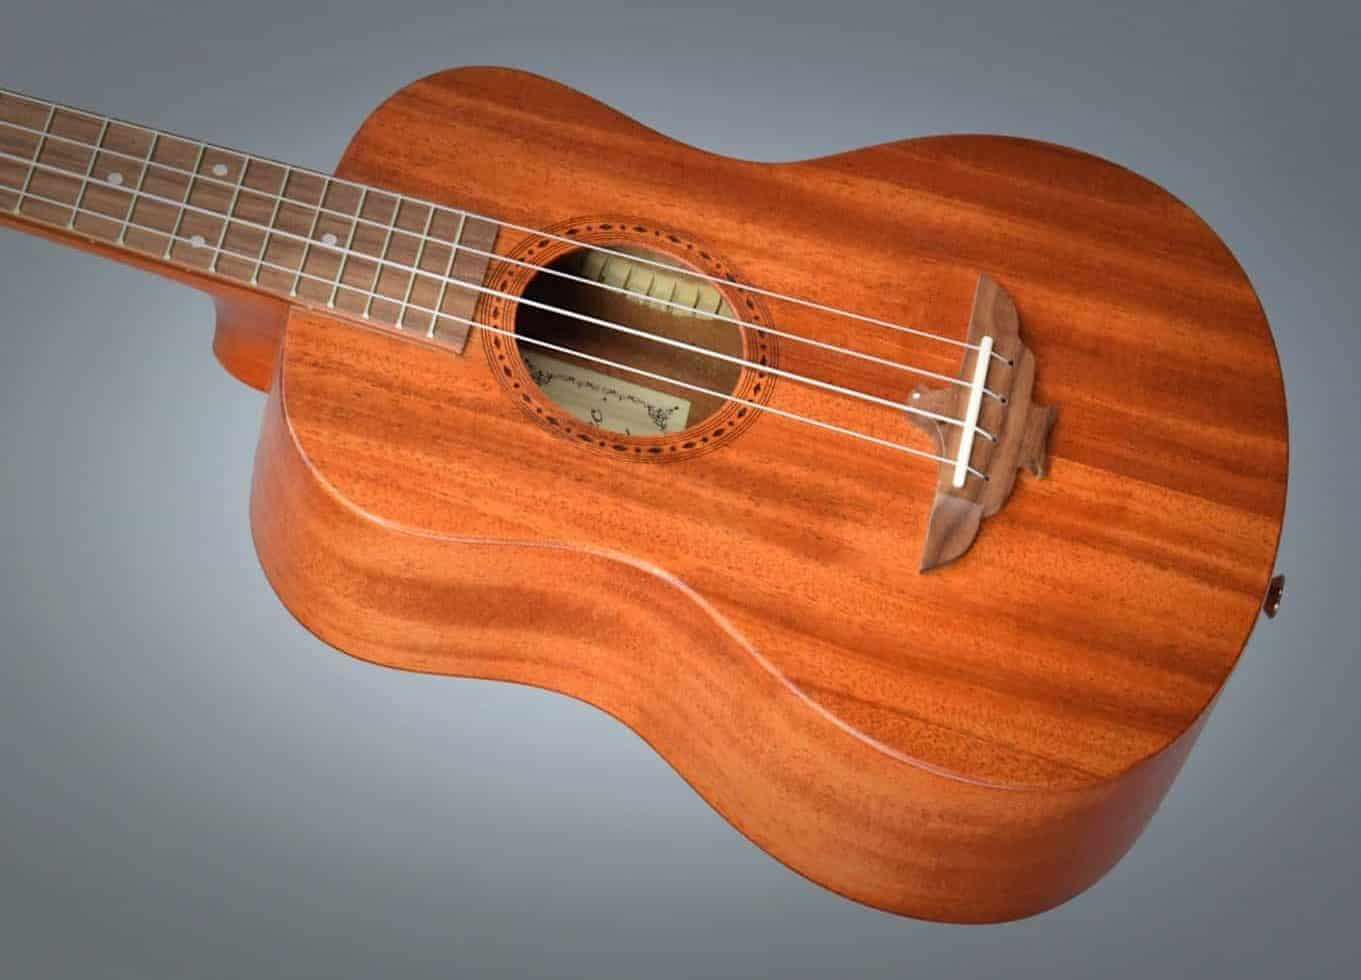 Aklot Ukulele Review